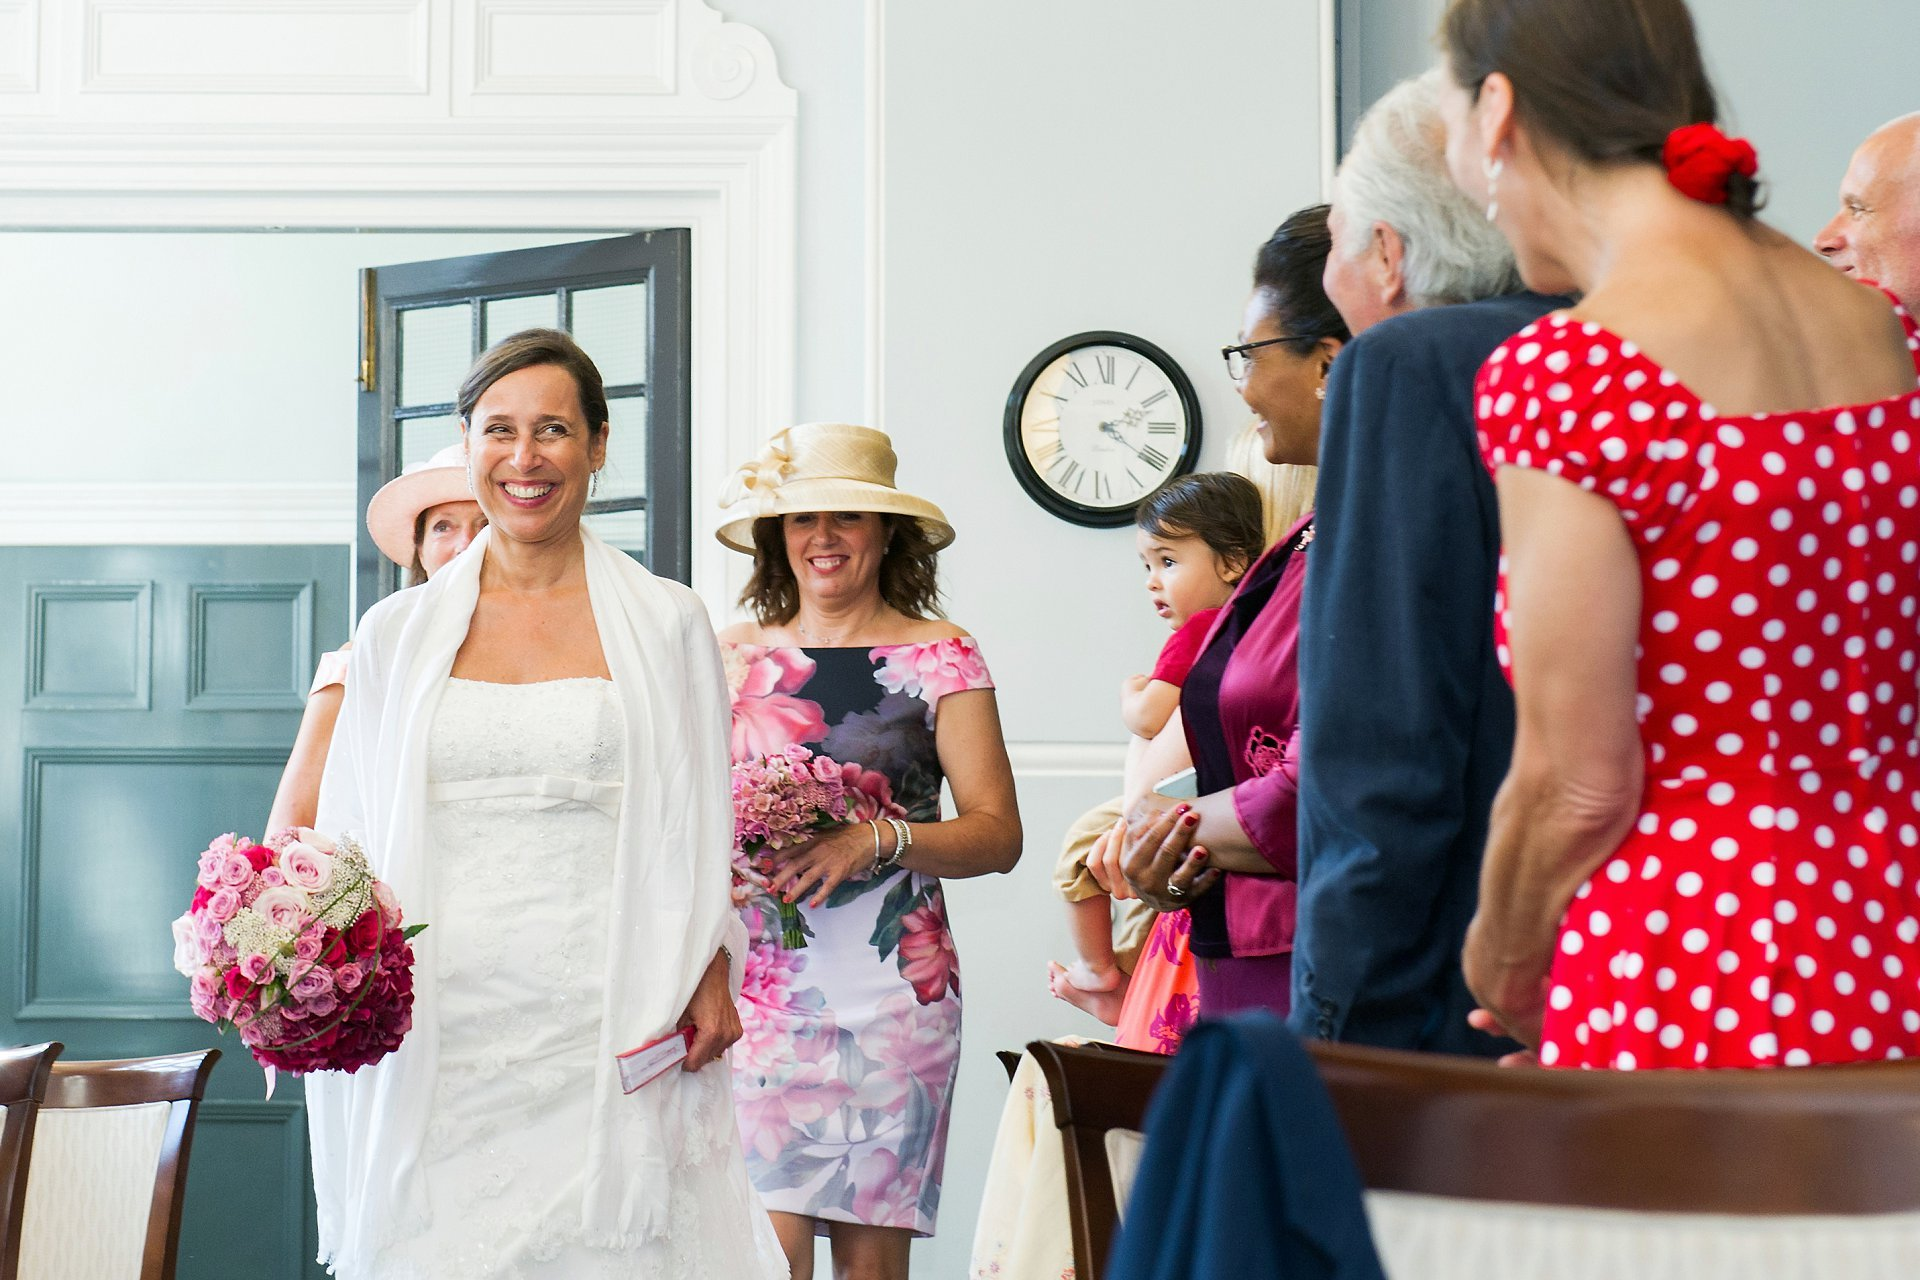 A bride and her two witnesses enter the ceremony room for this Marylebone register office summer wedding